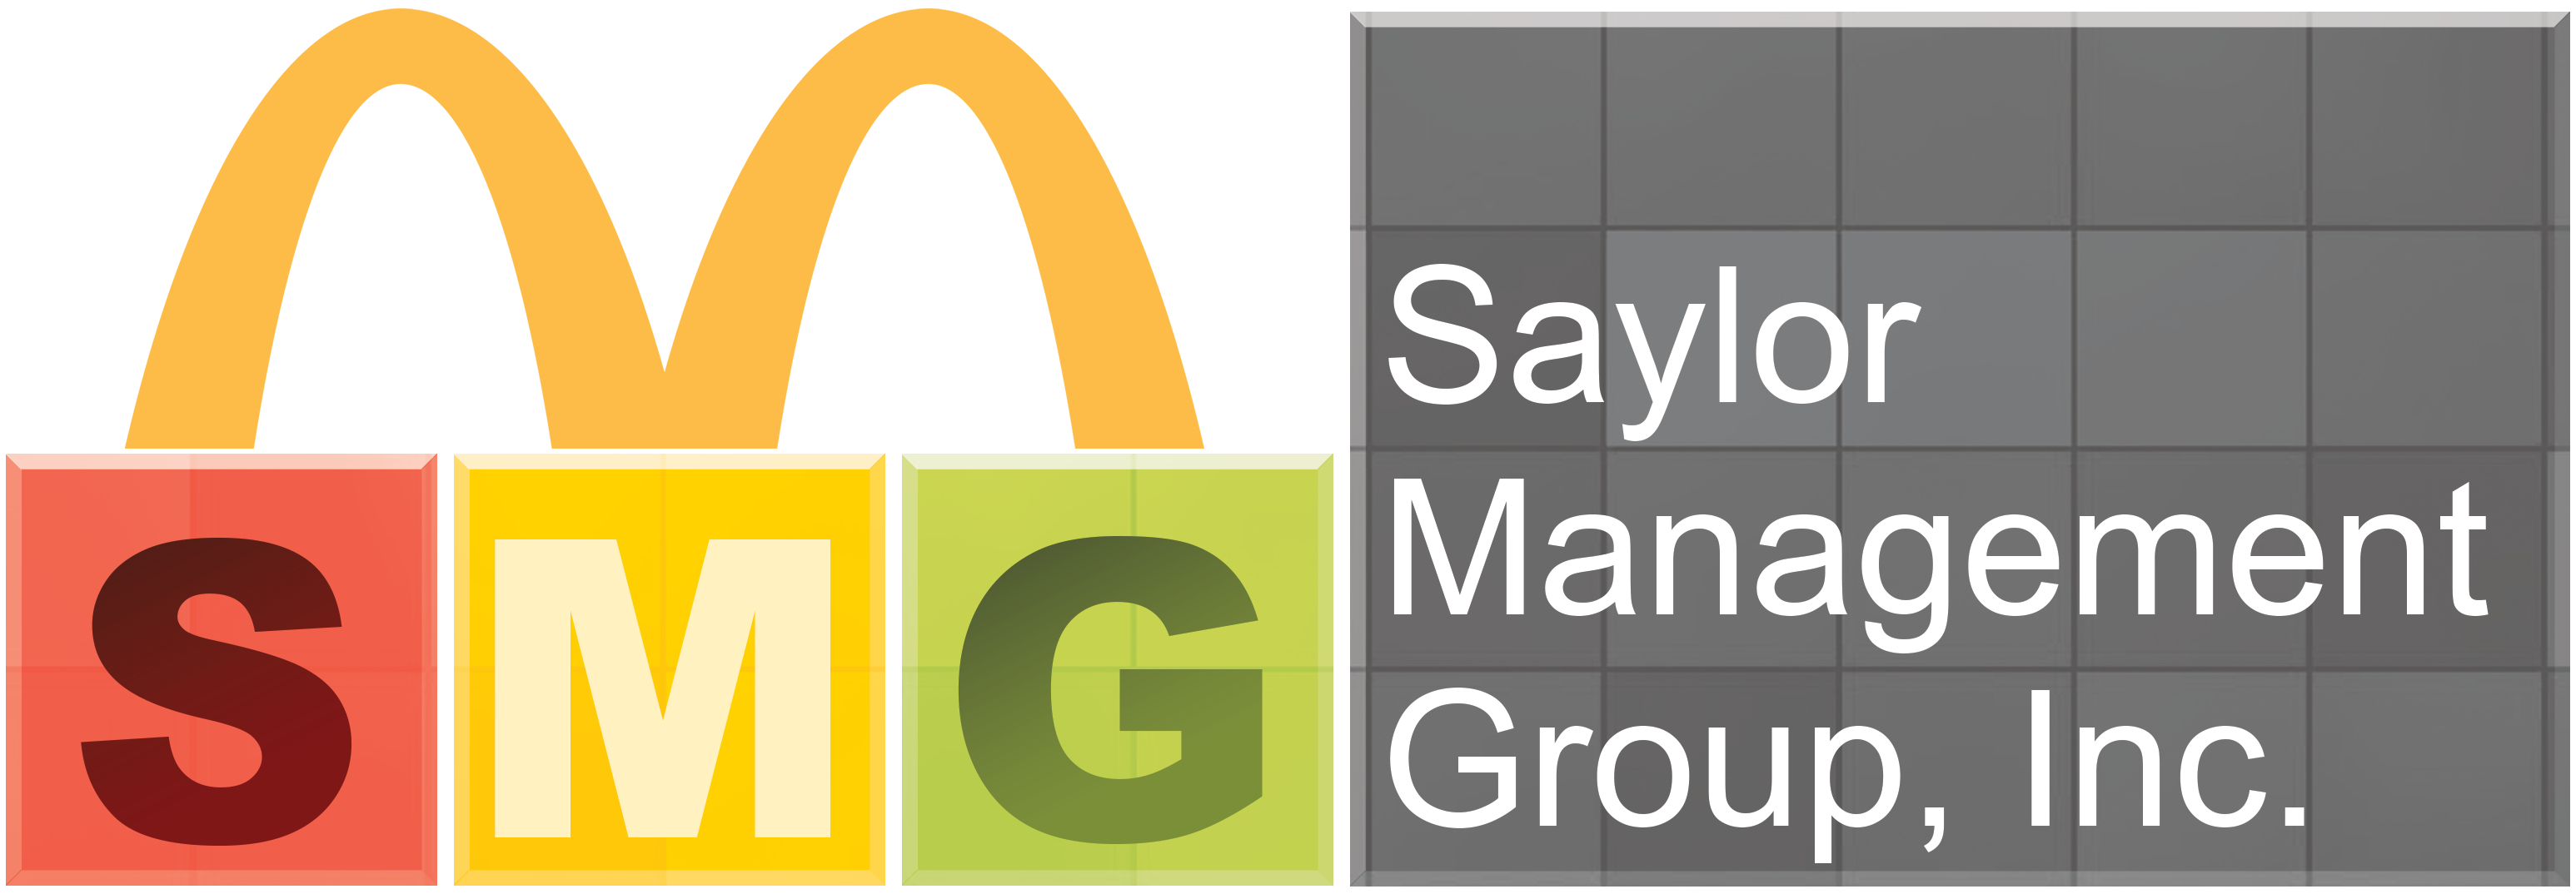 McDonald's Franchisee, Saylor Management Group